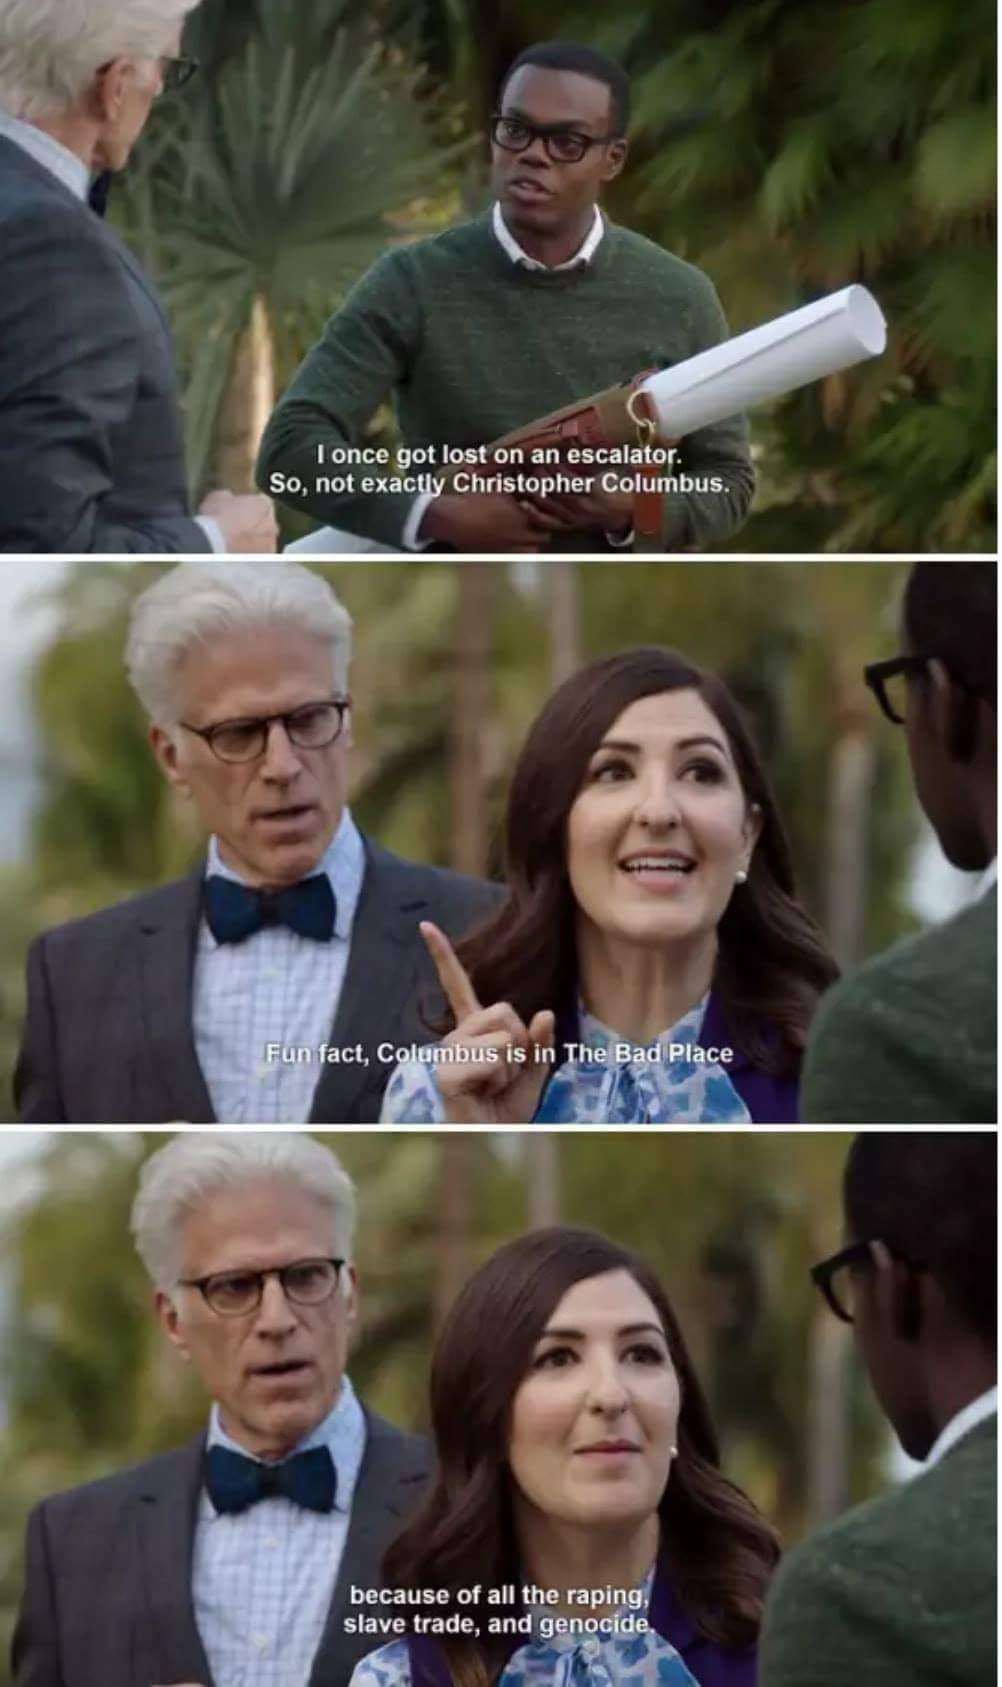 Hilarious The good place series memes